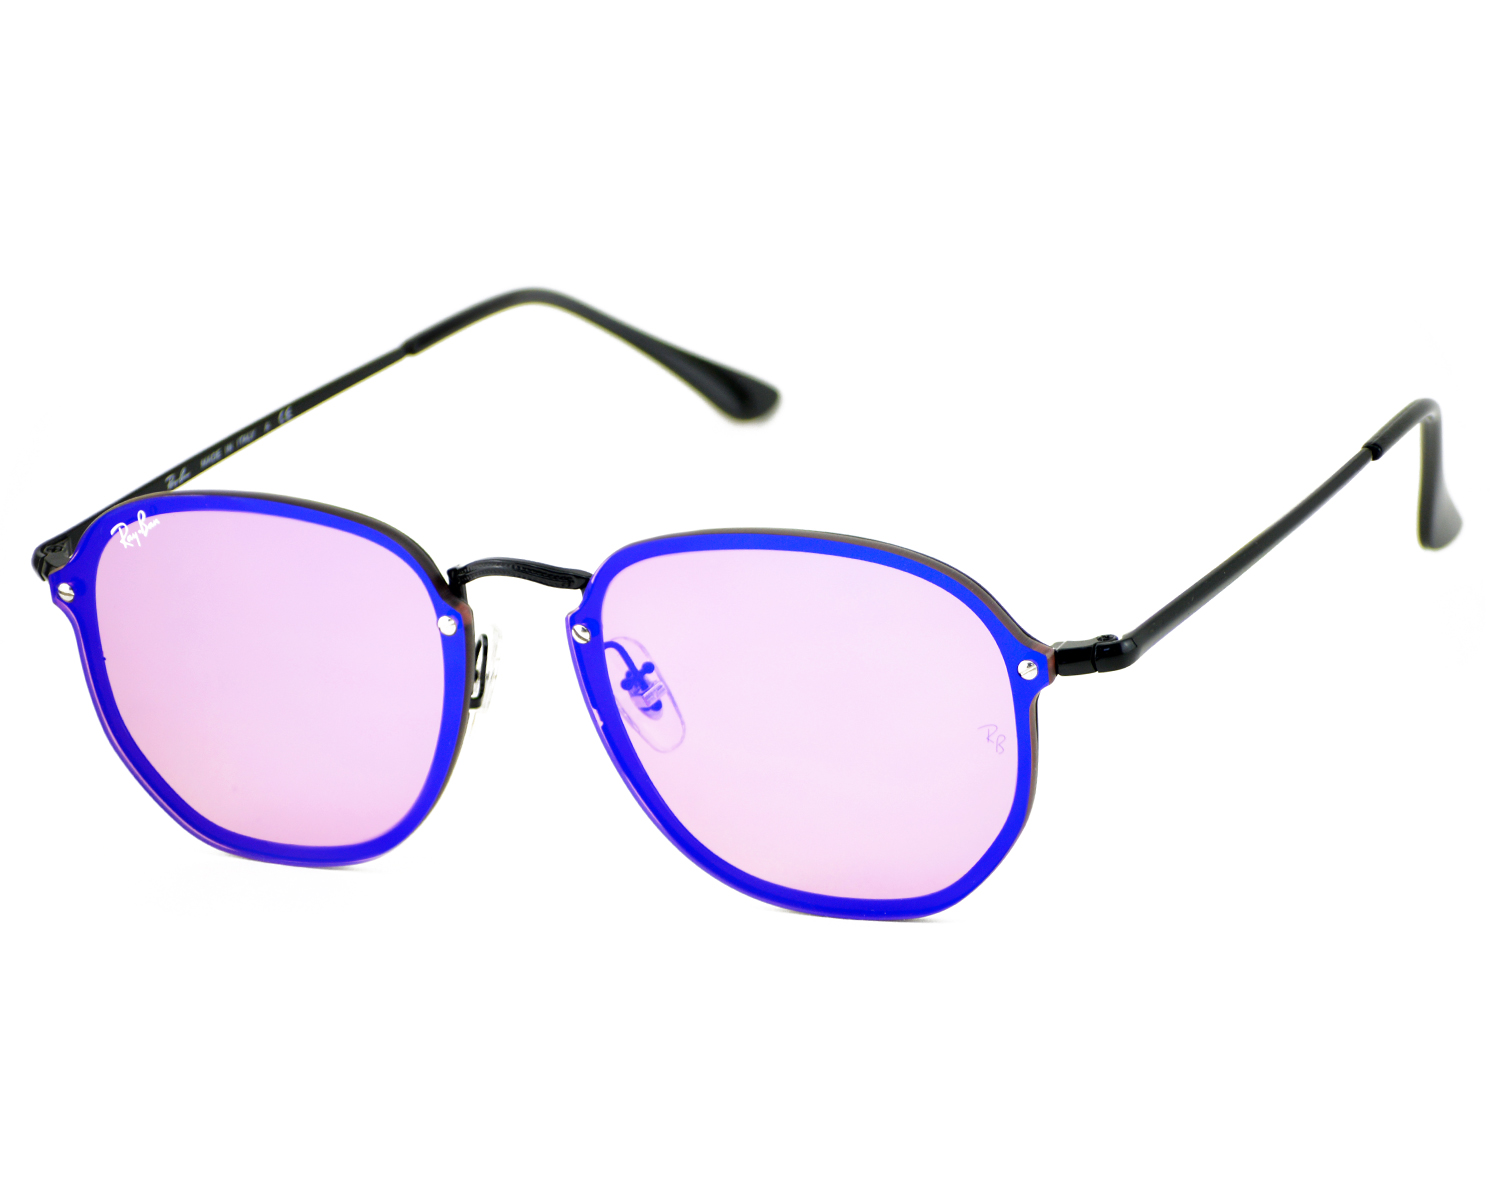 dc23ada23d Ray-Ban RB3579N Blaze Hexagonal 153 7V Black Frame Violet Blue Mirror  Lenses Unisex Sunglasses 58mm